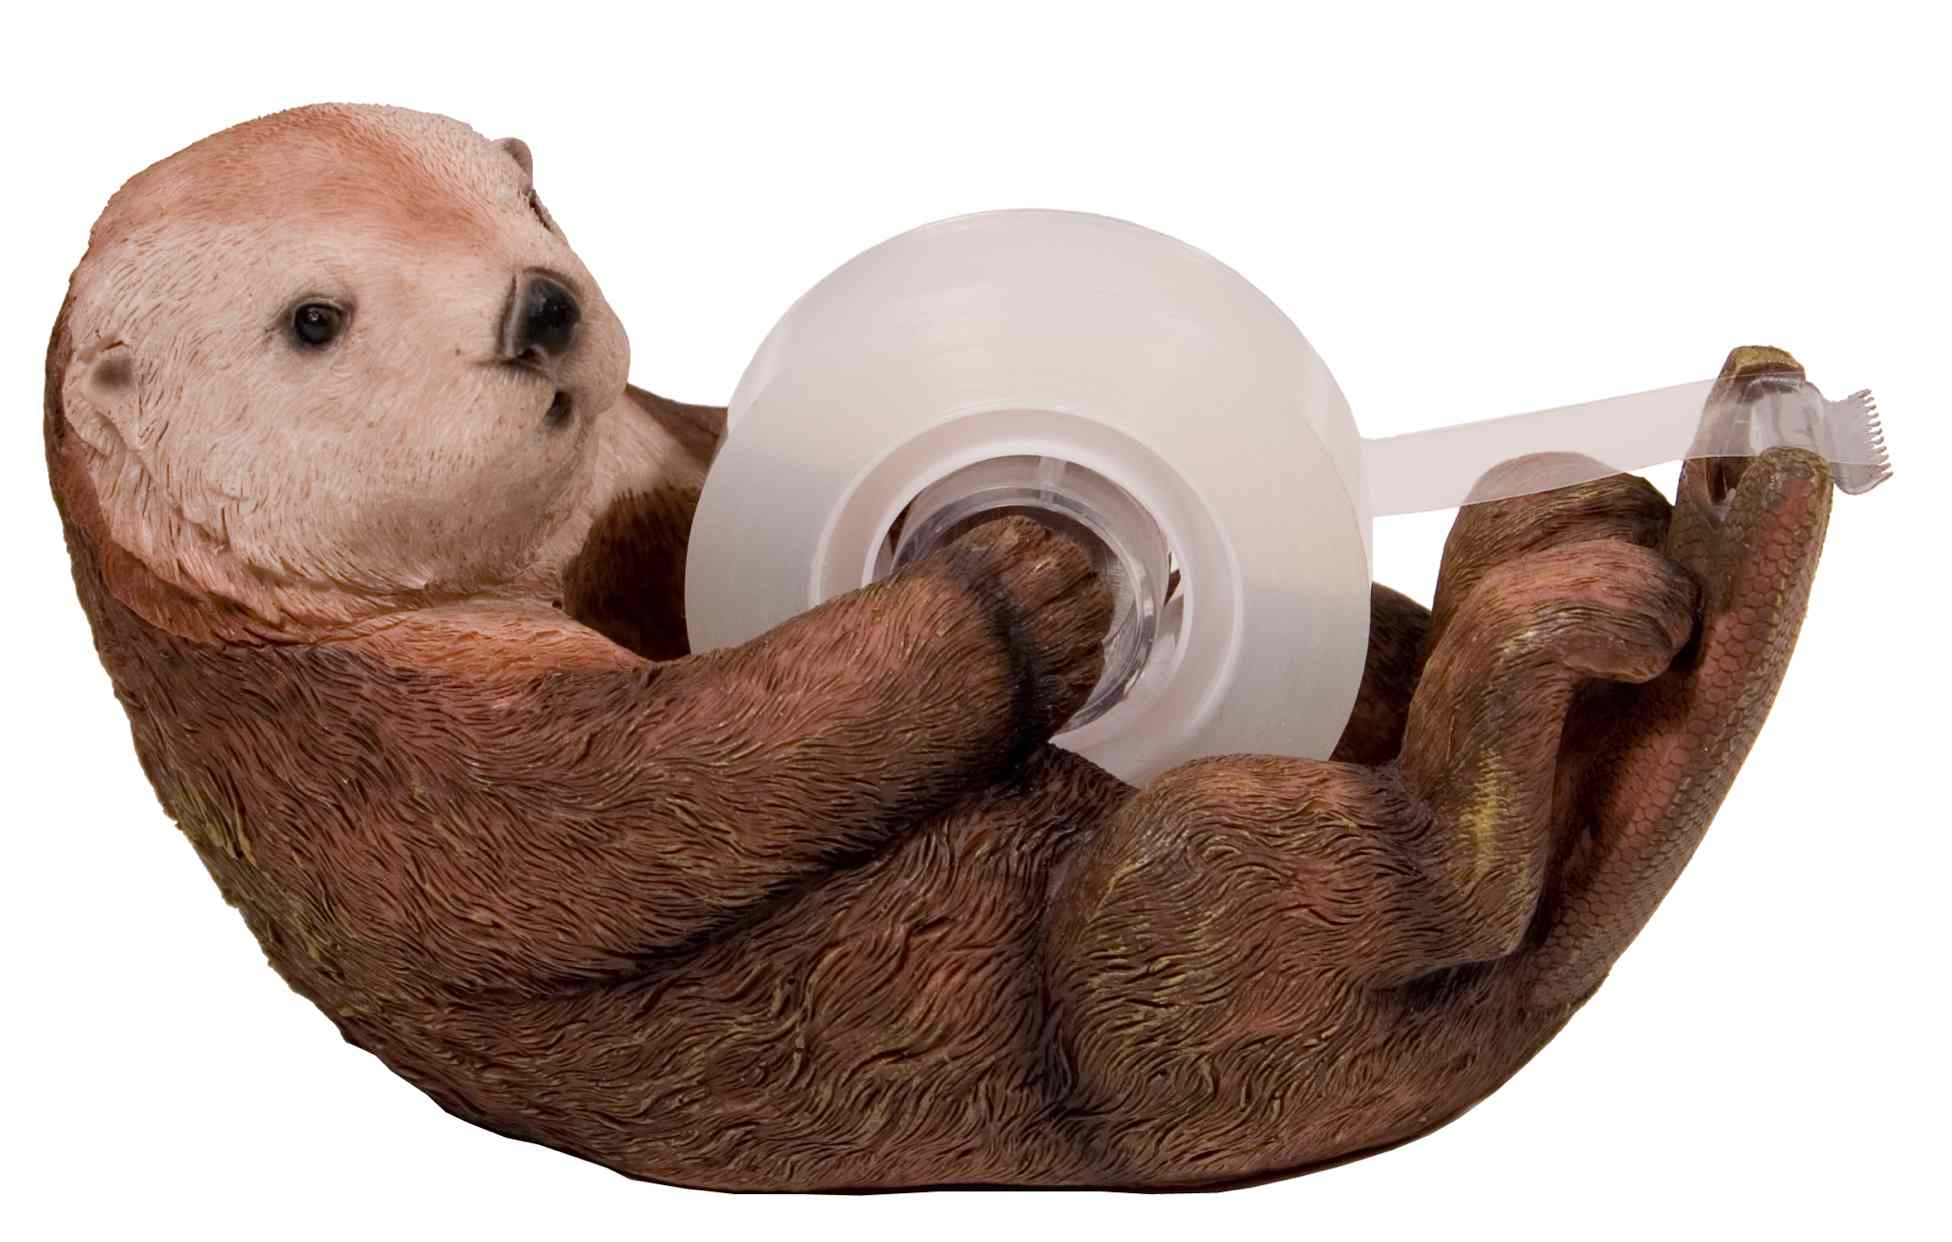 Otter shaped tape dispenser  / Promotional product fully customi